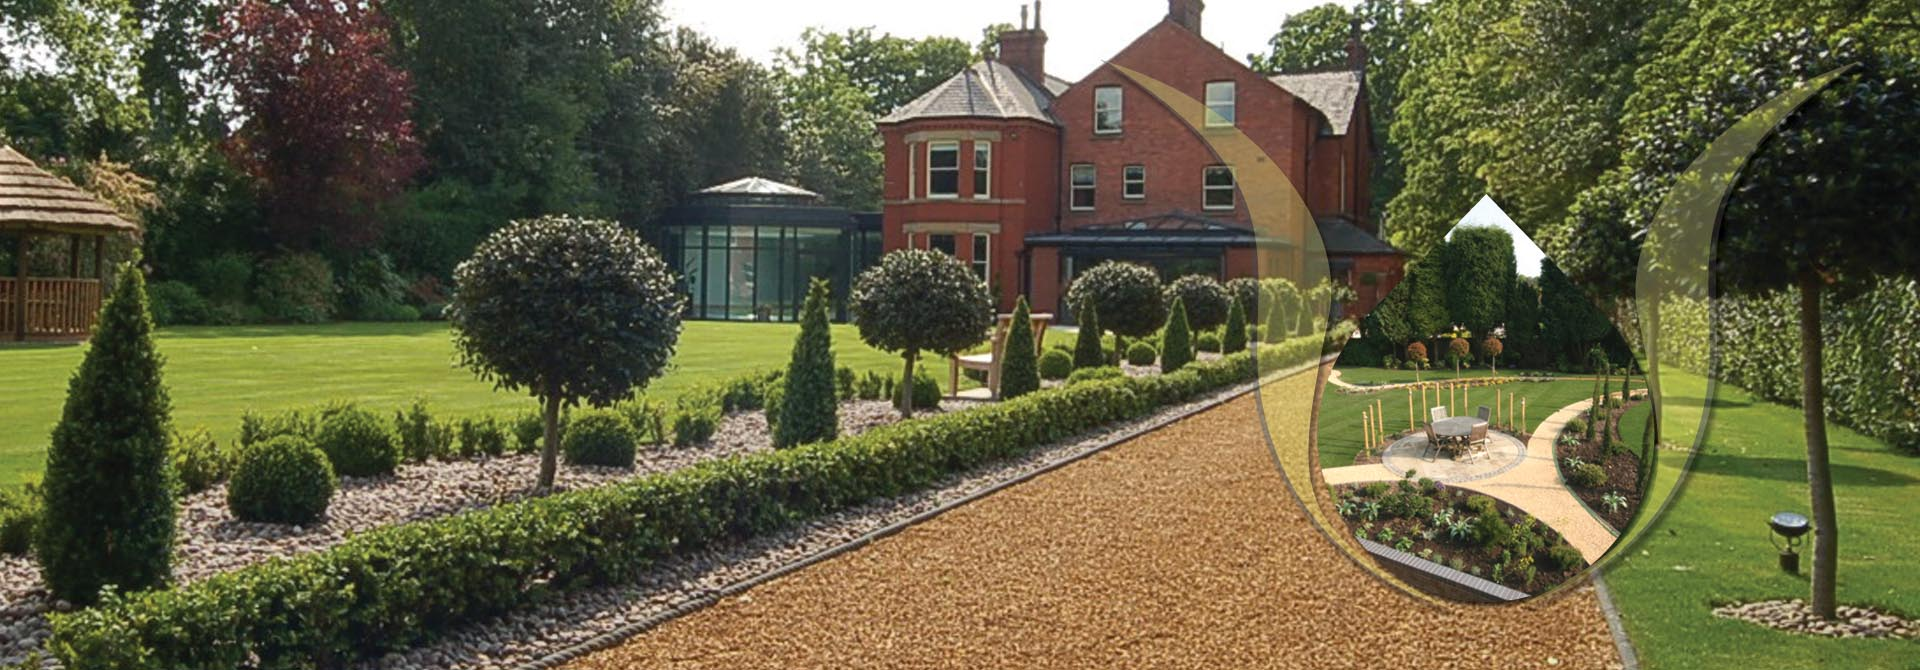 garden design cheshire driveways cheshire resin driveways - Garden Design Cheshire